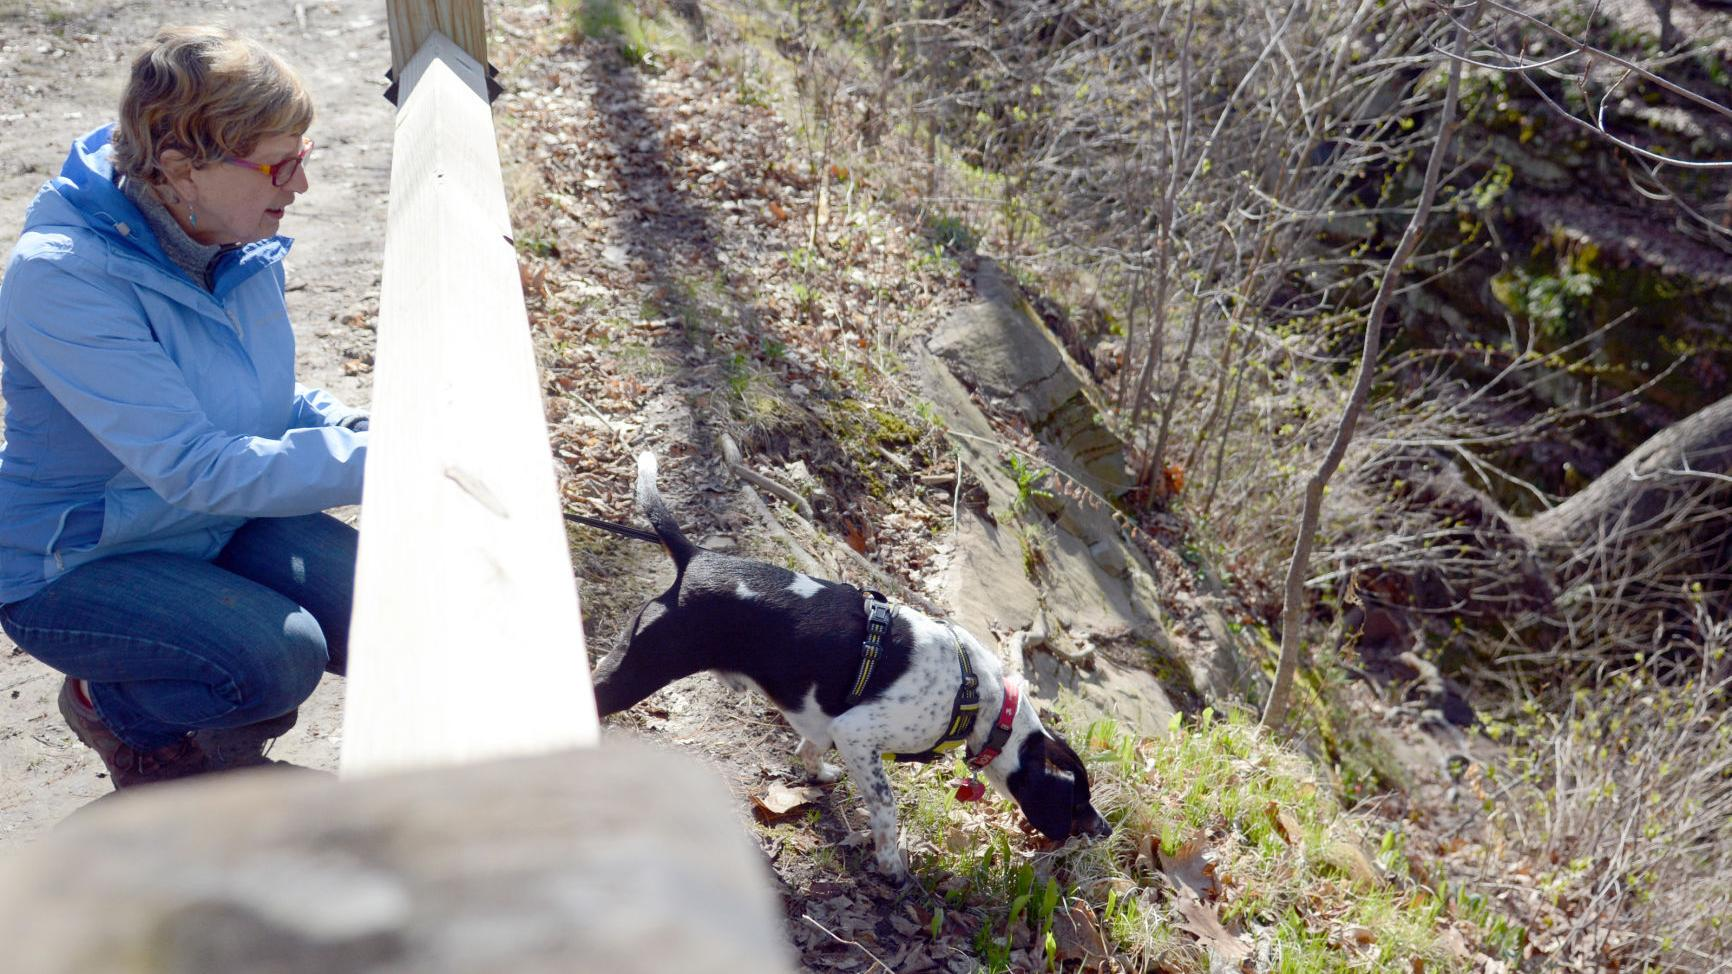 DNR reopens state natural areas near Baraboo after leaving them closed for a year